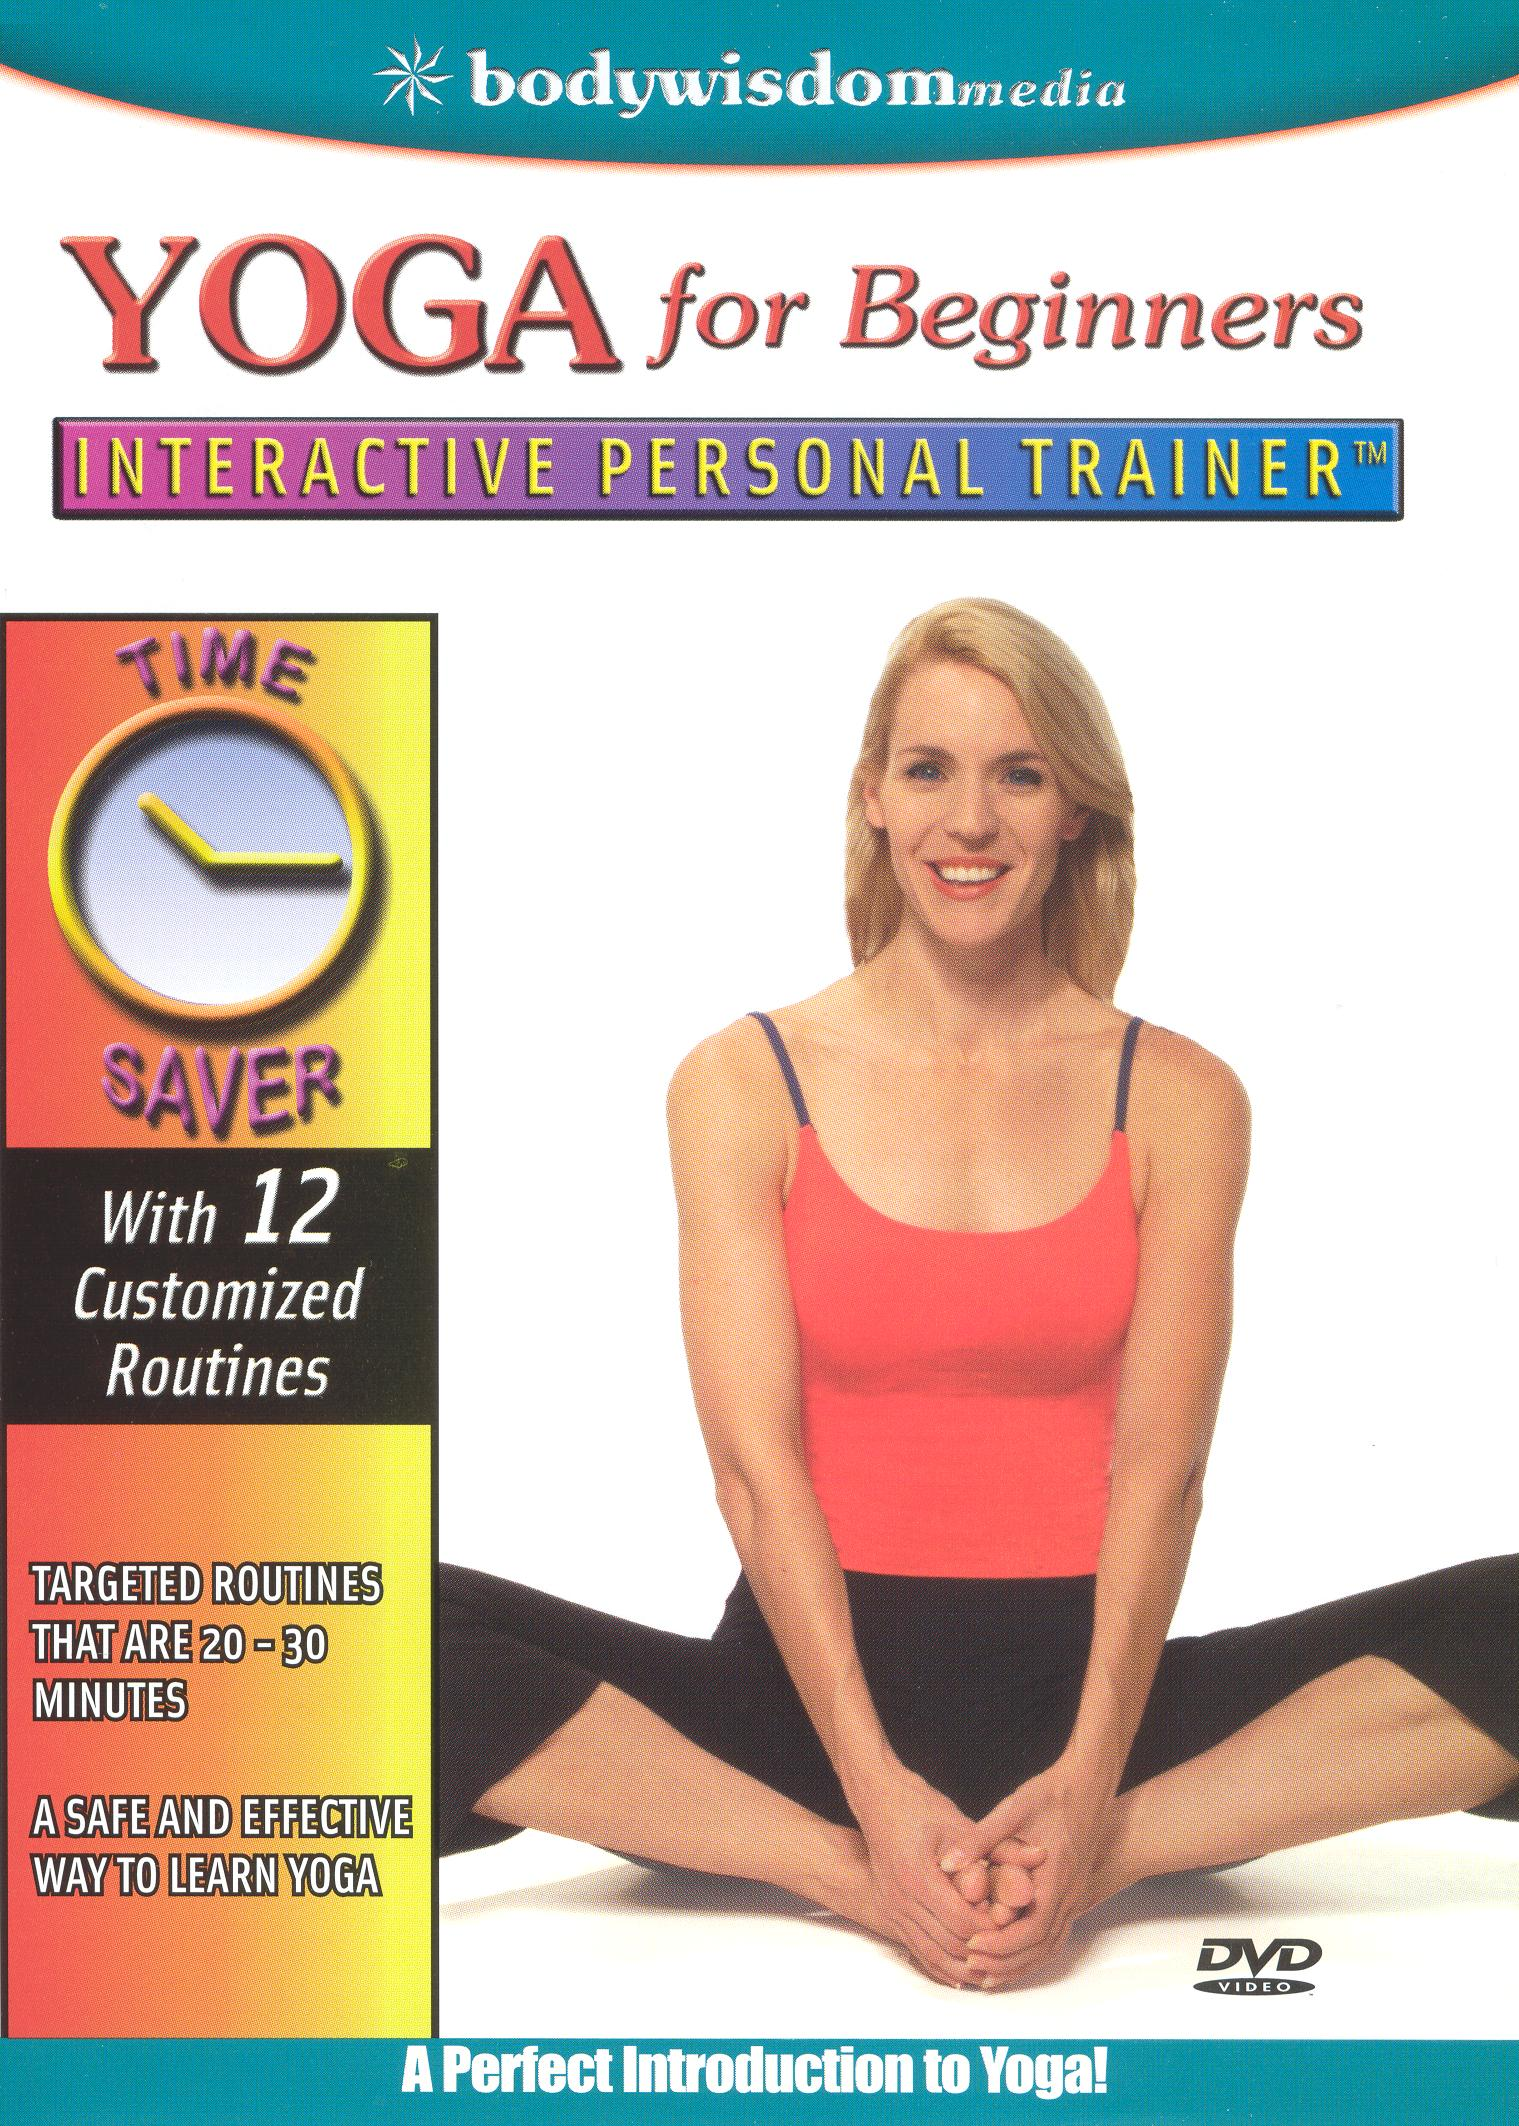 Interactive Personal Trainer: Yoga for Beginners